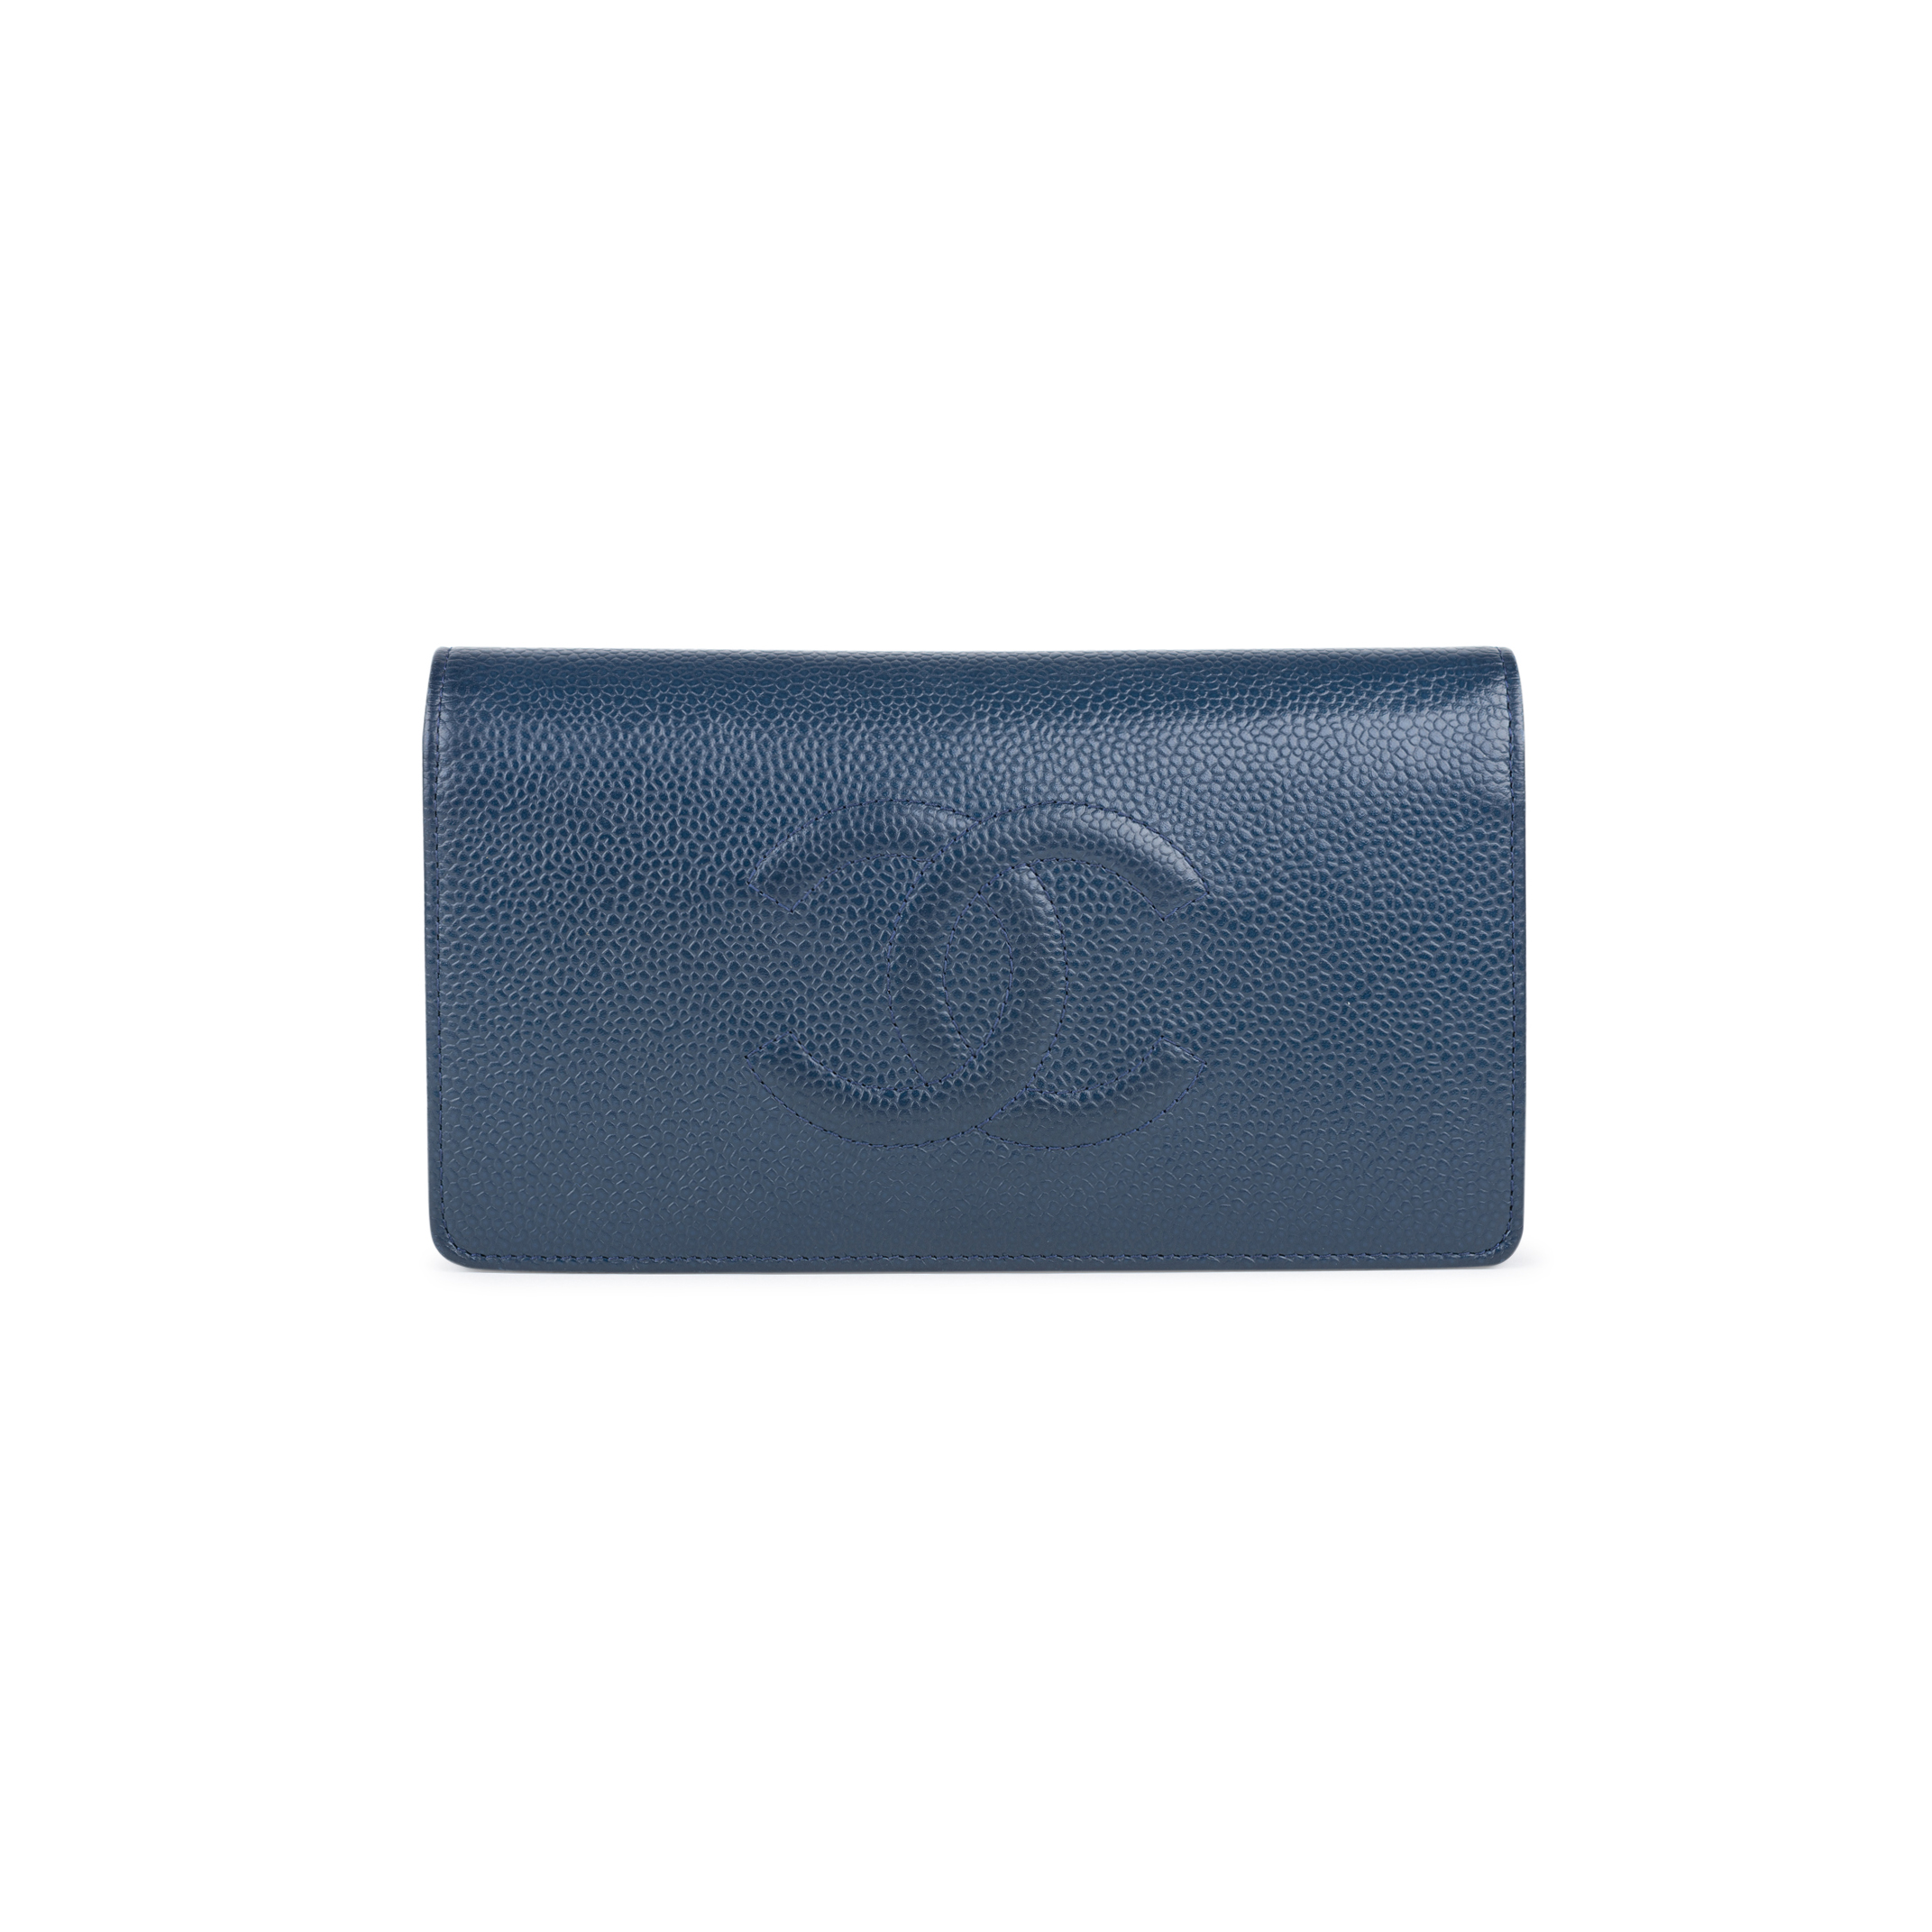 b55d106733e8 Authentic Second Hand Chanel Caviar Yen Wallet (PSS-547-00012) | THE FIFTH  COLLECTION